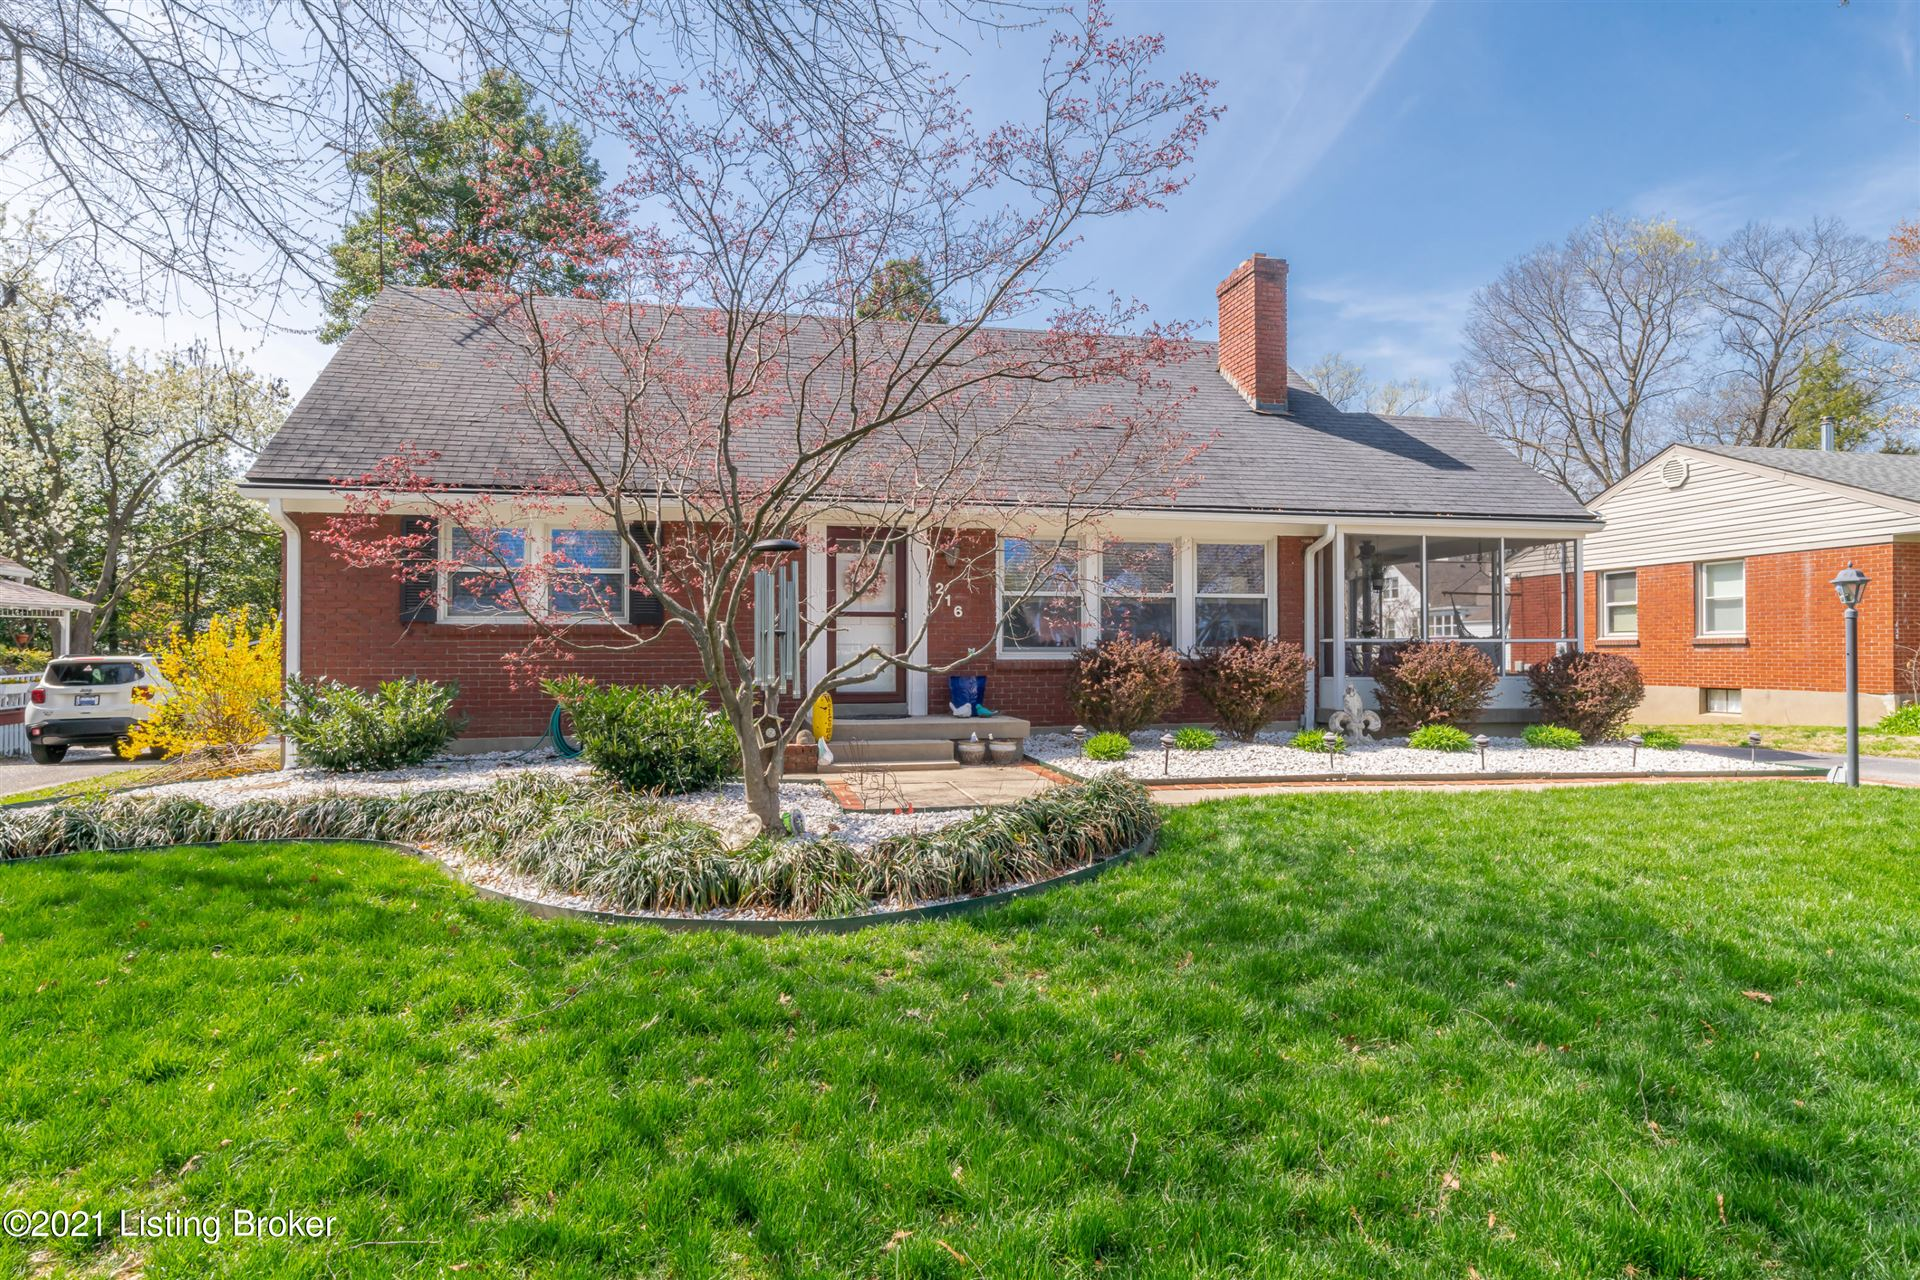 Photo for 216 Biltmore Rd, Louisville, KY 40207 (MLS # 1582742)